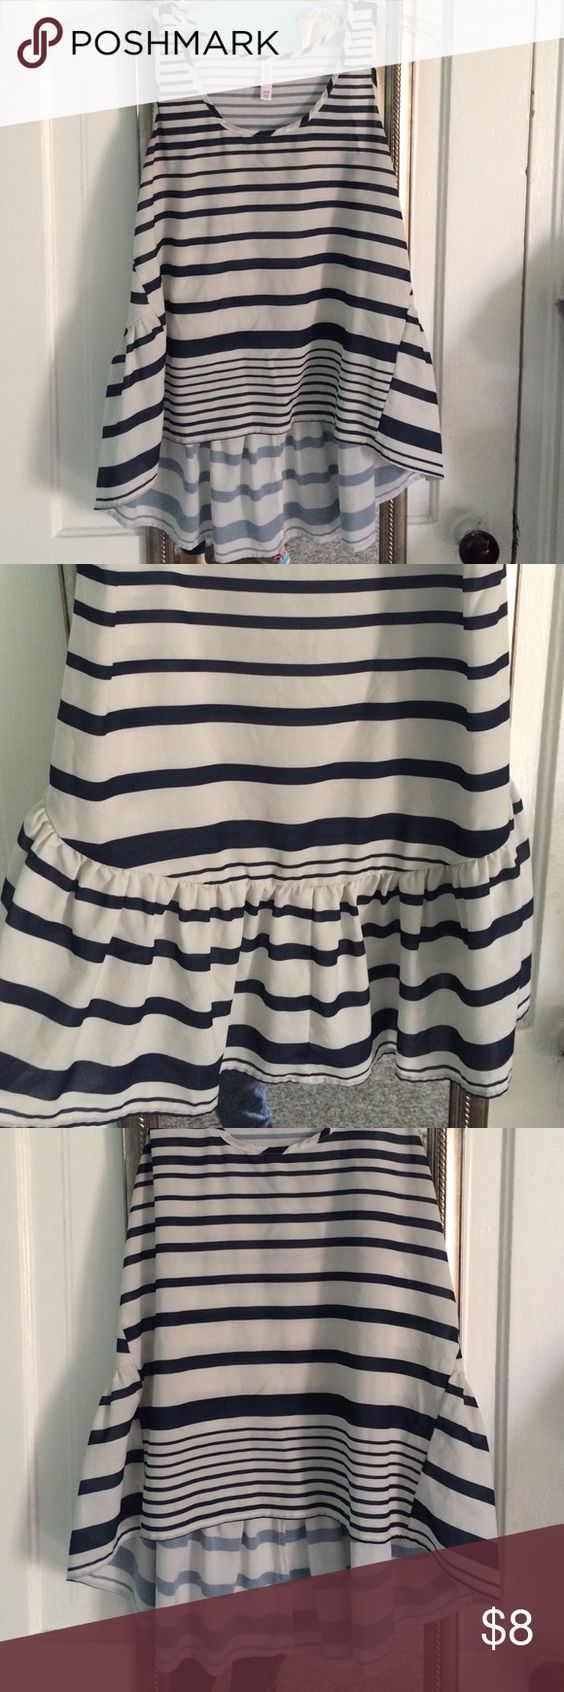 Striped Xhilaration Sleveless Blouse Cute Sleveless top with navy stripes. Has kinda of a ruching in the back as pictured. 100% Polyester size medium. Xhilaration Tops Blouses